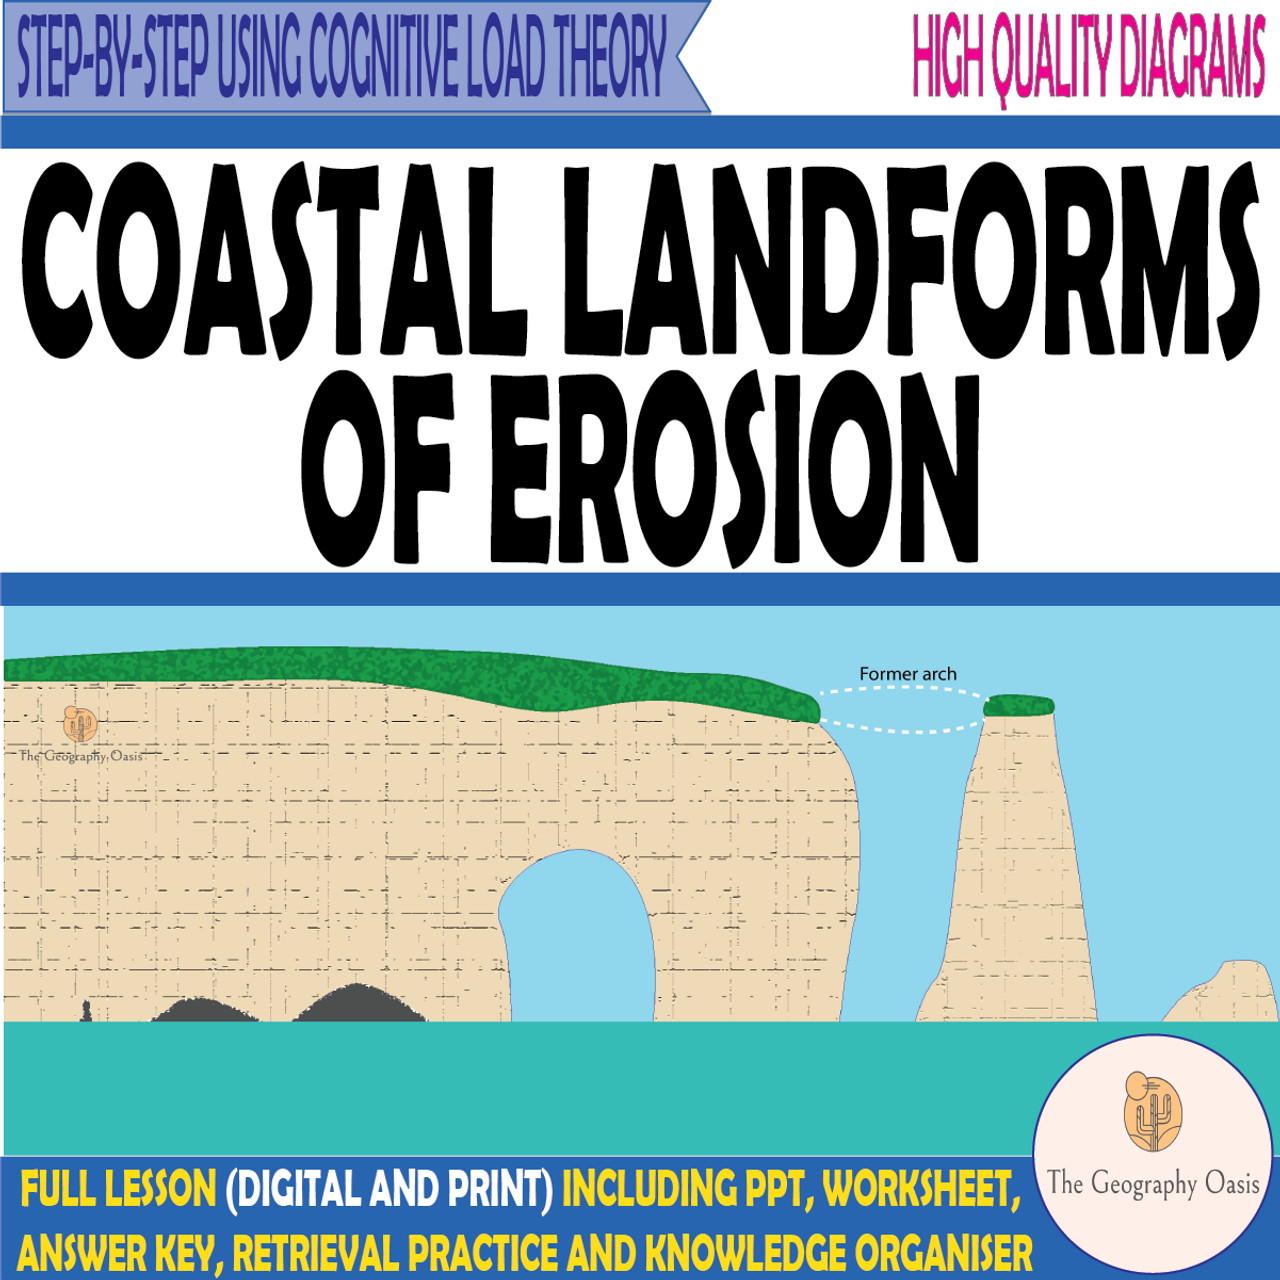 Coasts- Erosional Landforms